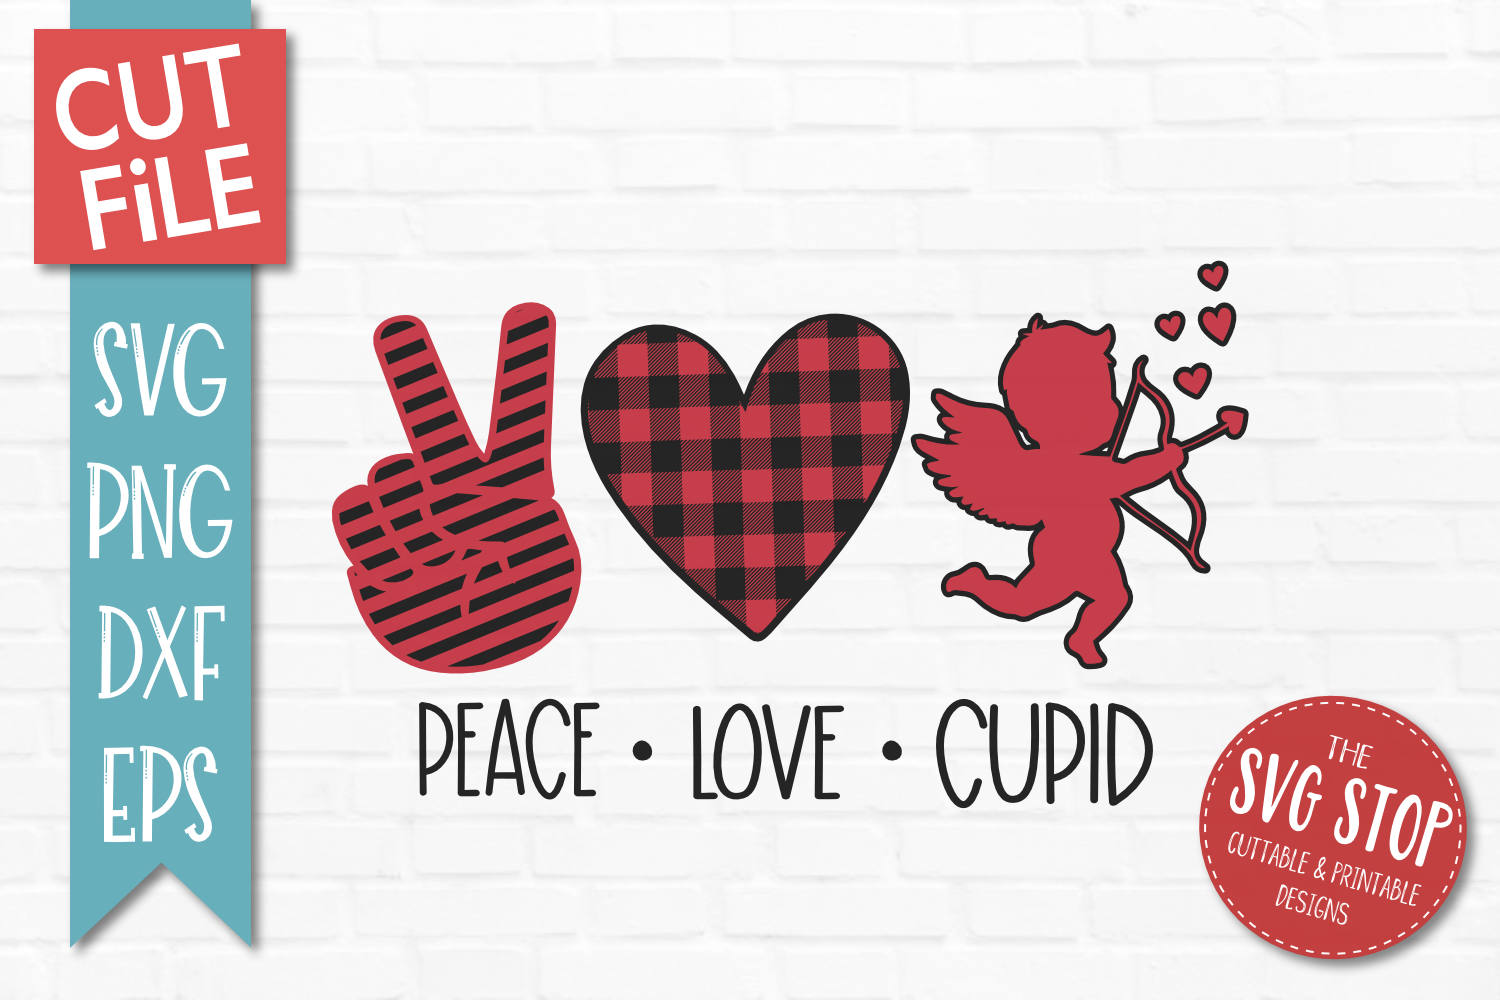 Peace Love Cupid SVG, PNG, DXF, EPS example image 1